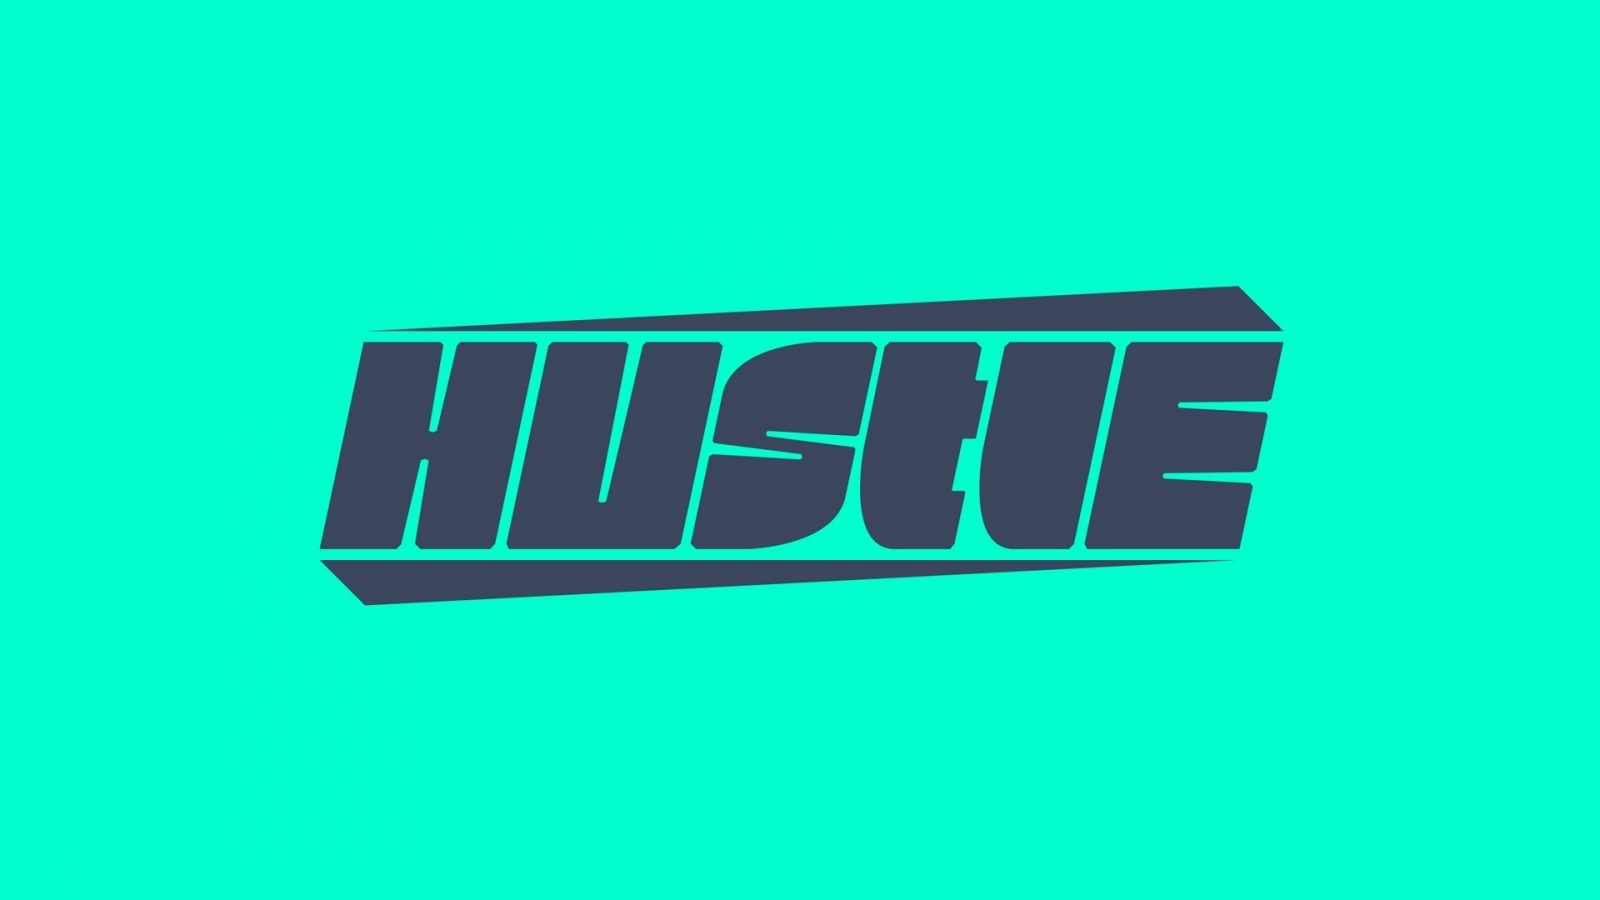 Virgo Ventures invests in Hustle